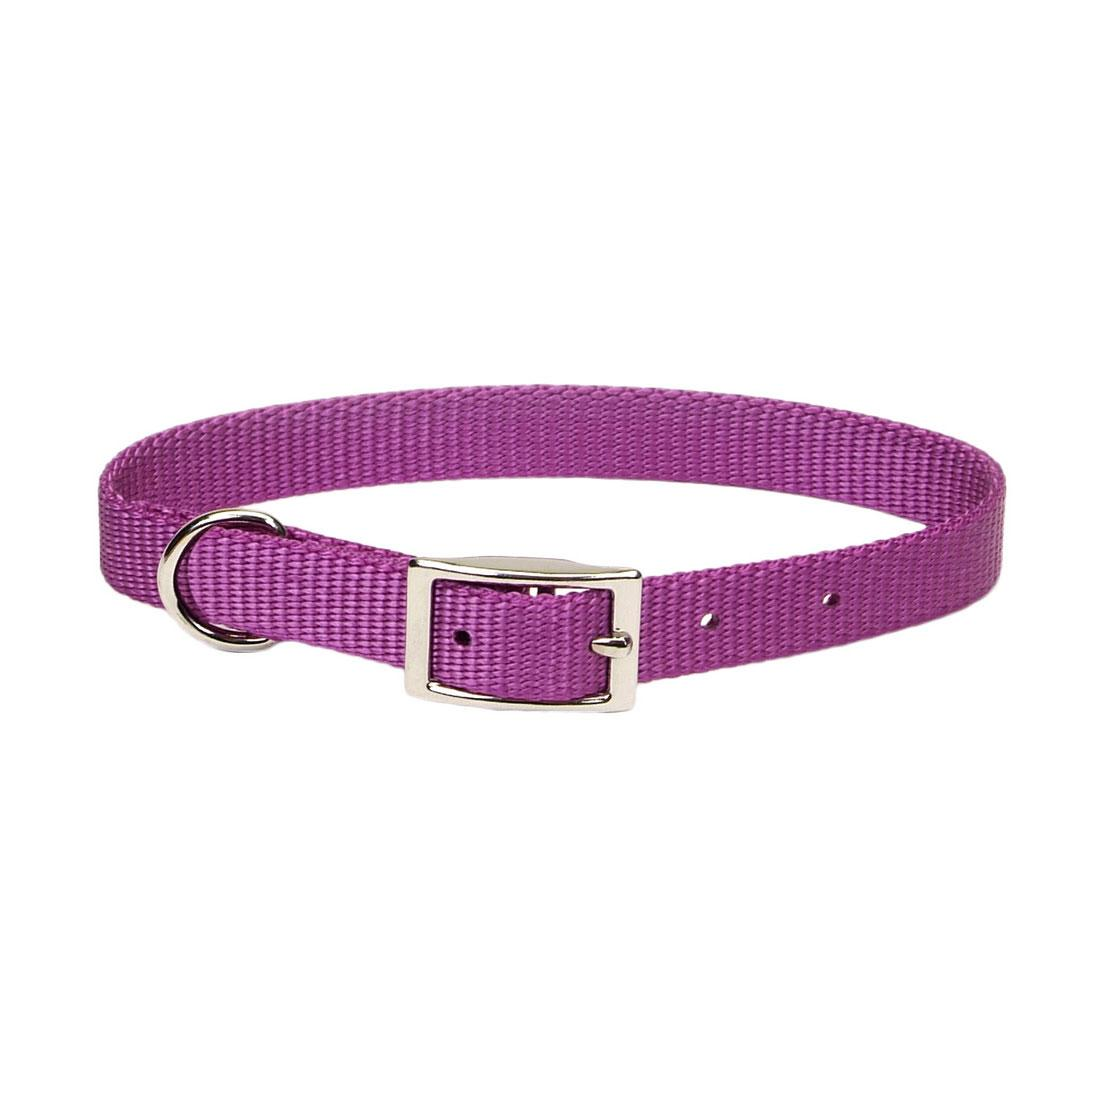 Coastal Single-Ply Dog Collar, Orchid, 5/8-in x 12-in